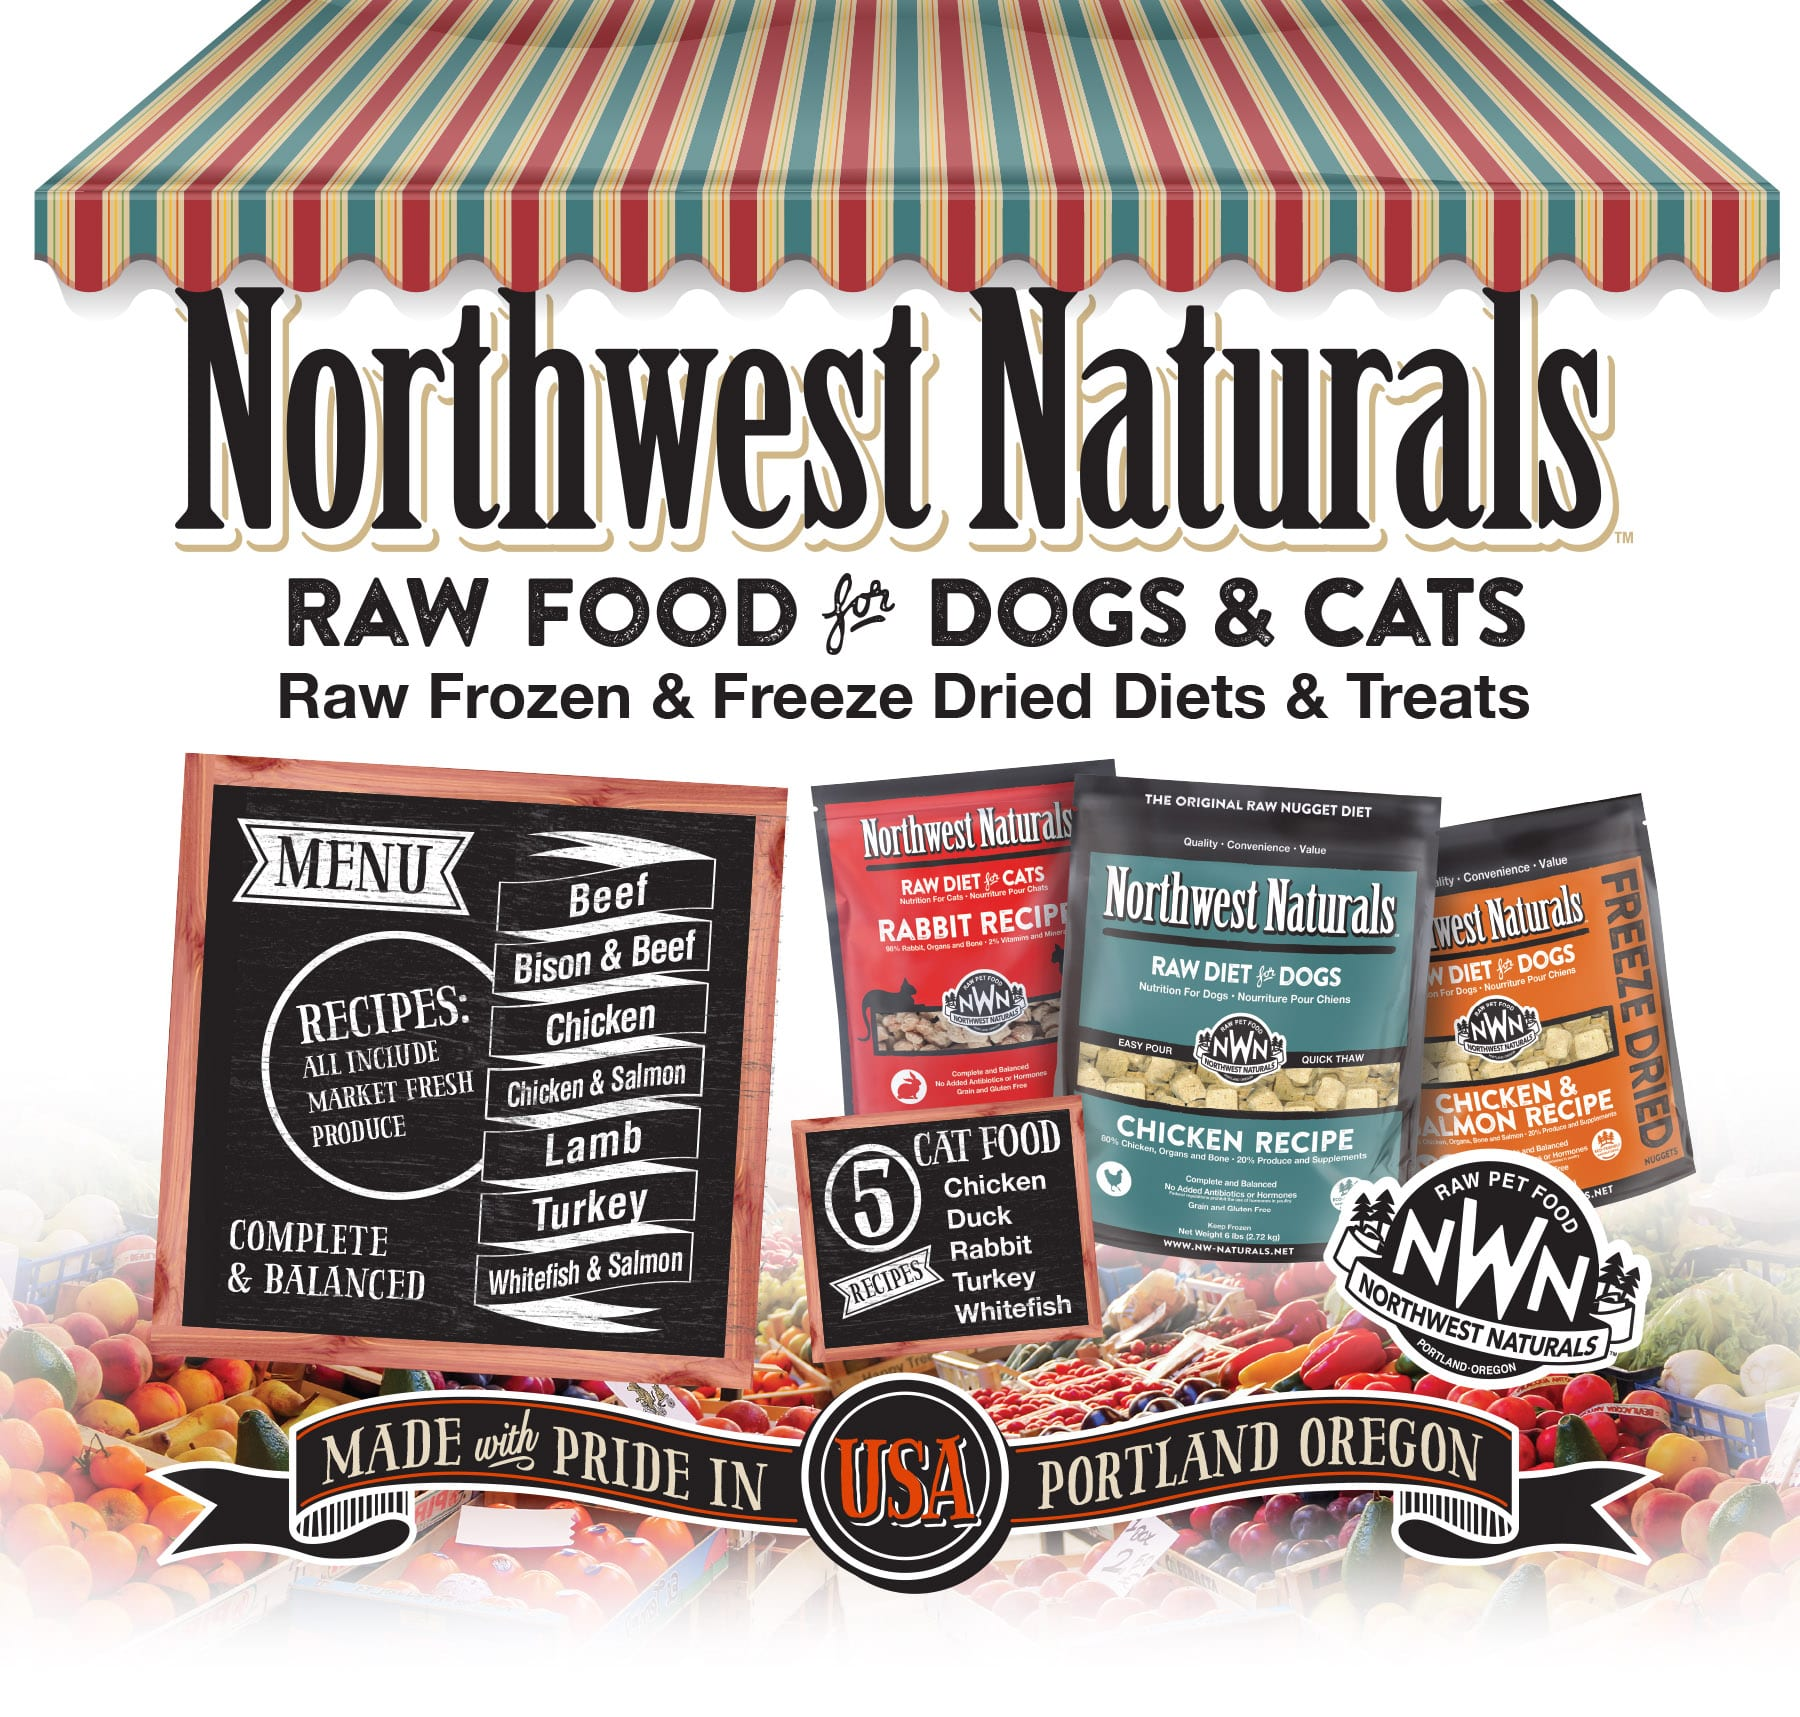 Raw Pet Food for Dogs & Cats from Northwest Naturals